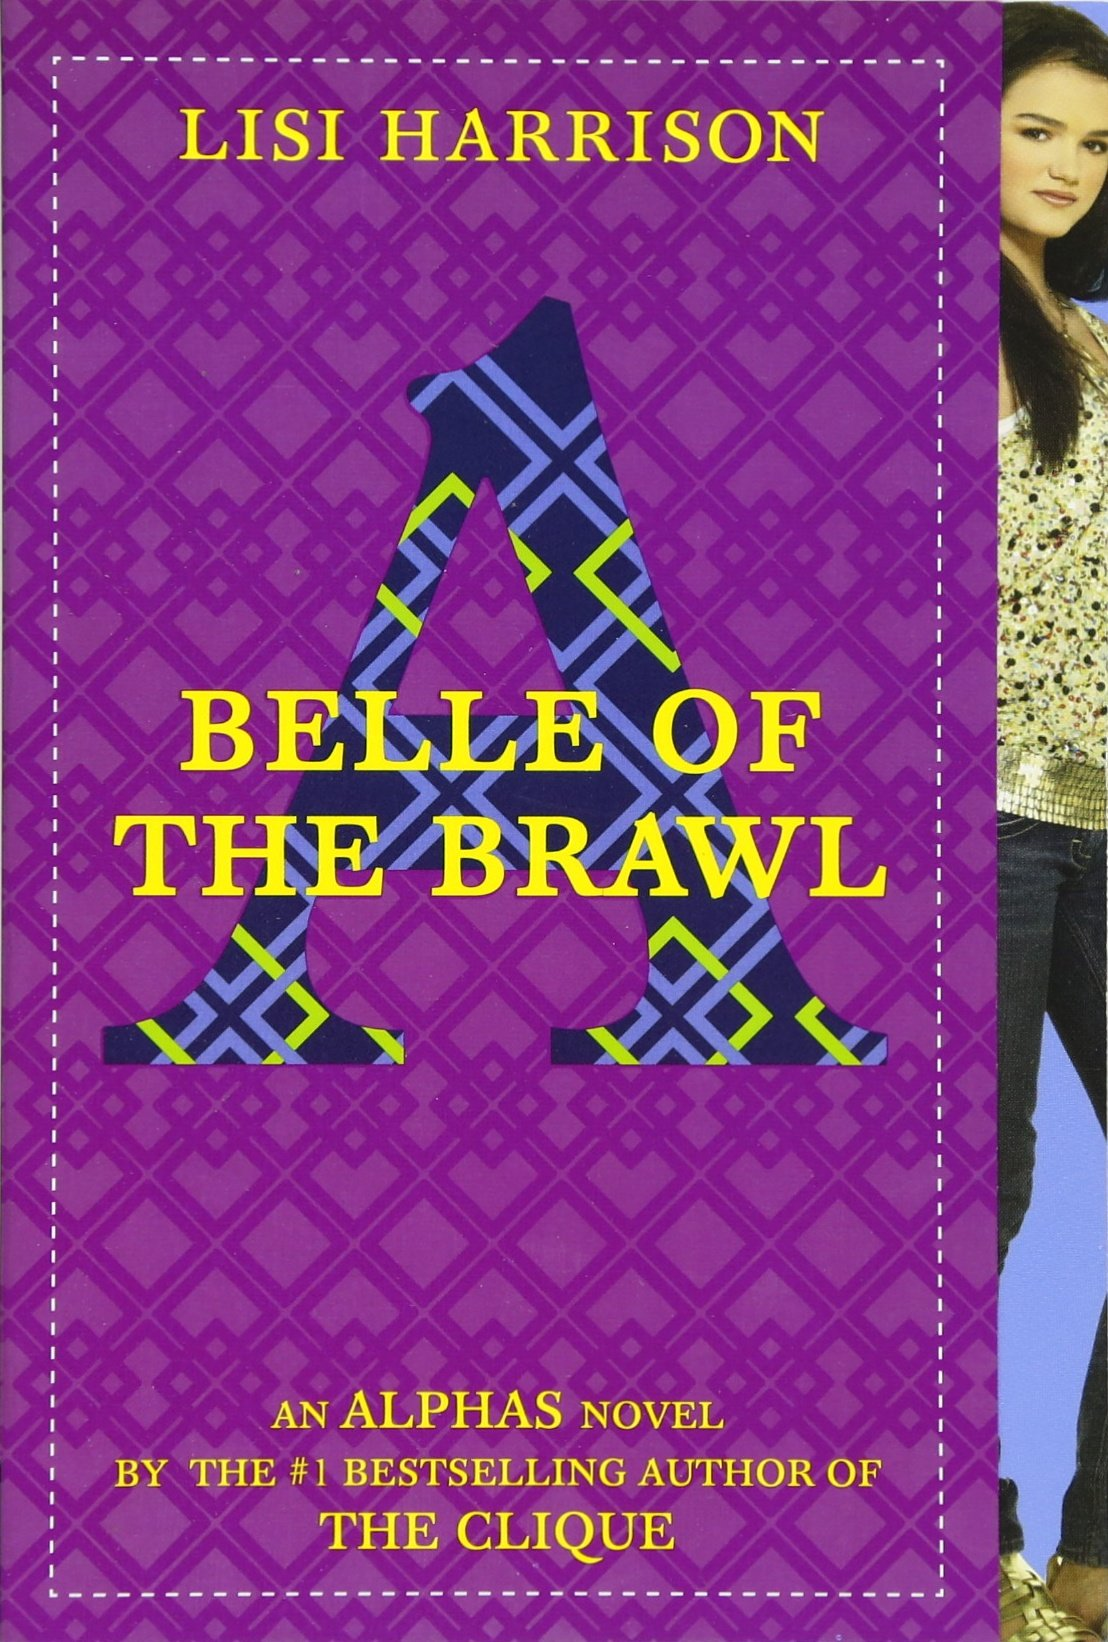 Download Belle of the Brawl (Alphas) pdf